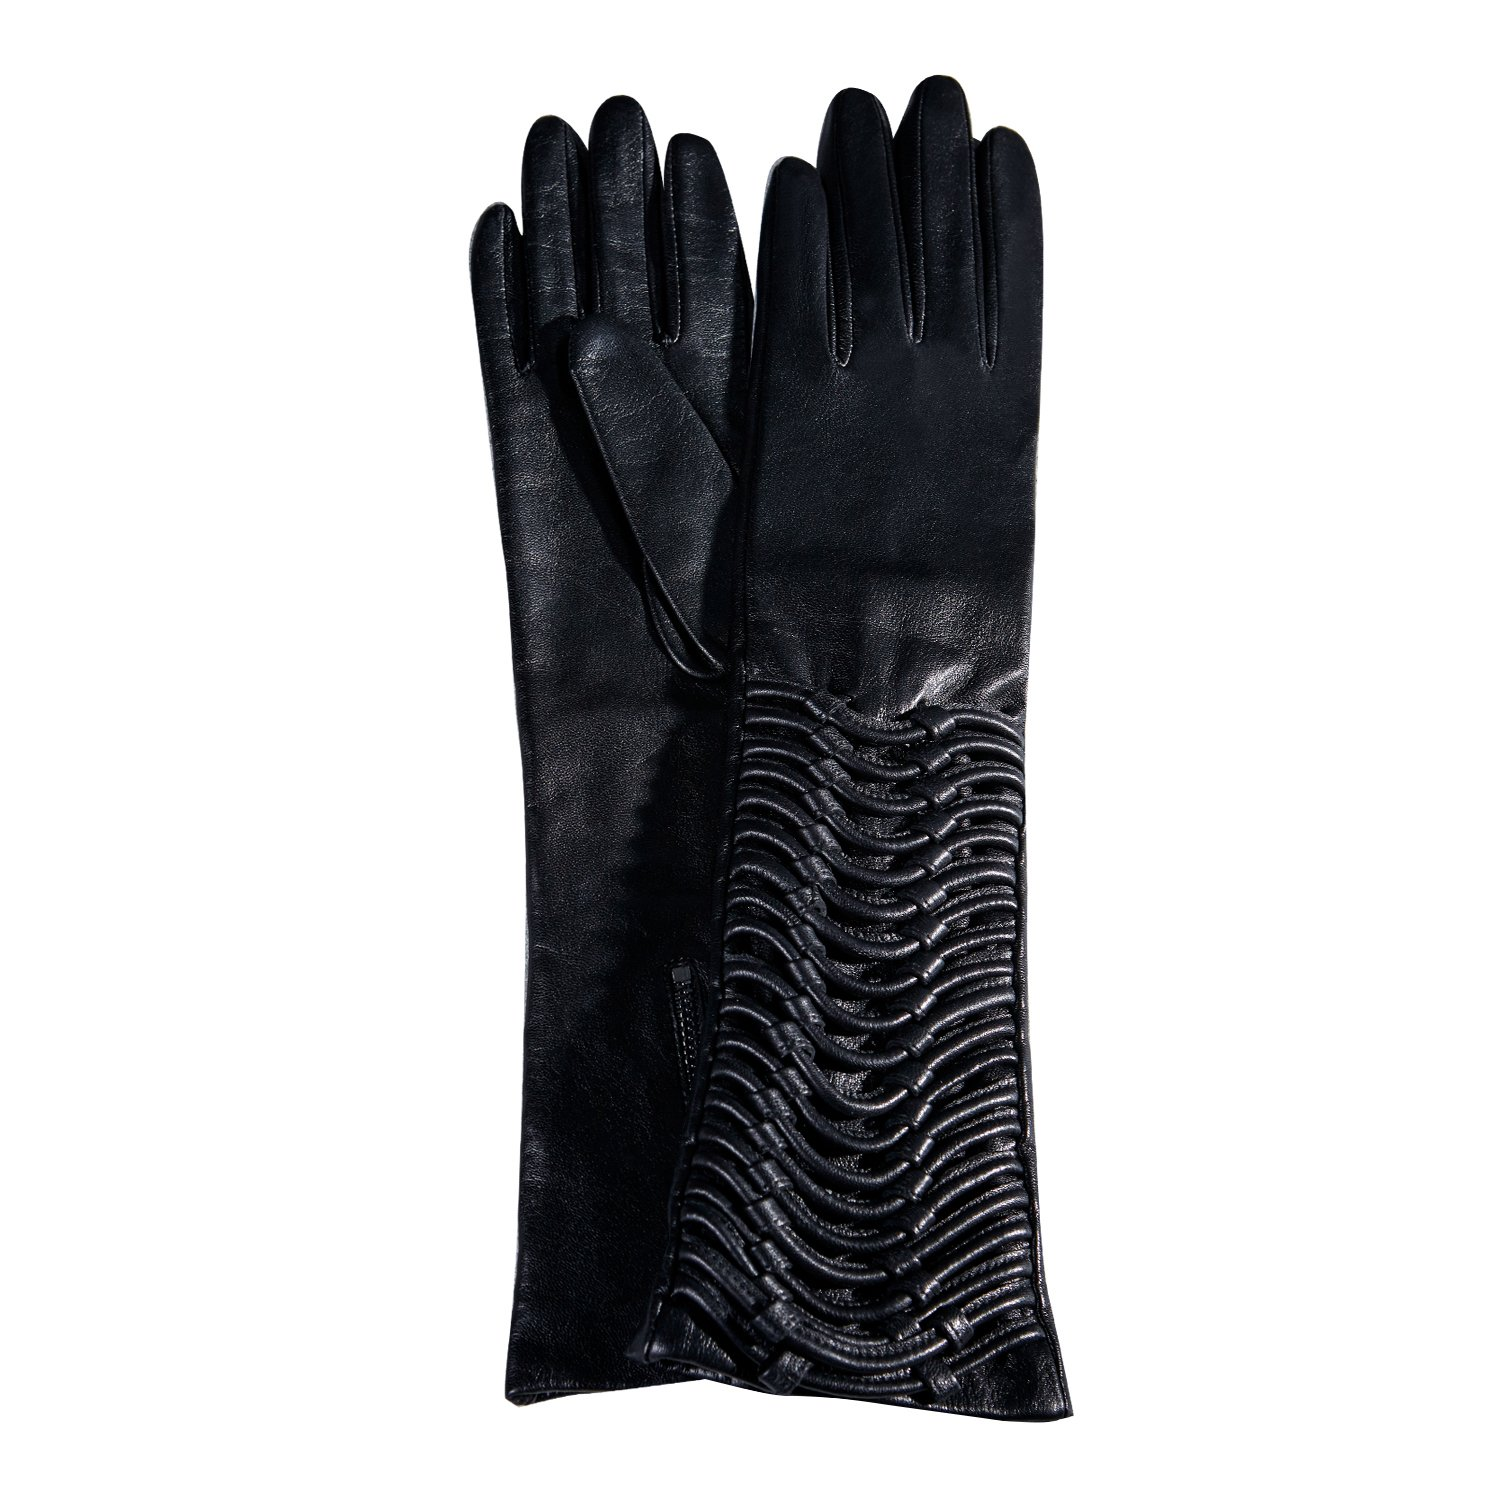 Fioretto Lady Sexy Leather Elbow Gloves Driving Winter Italian Goatskin Ruched Evening Dress Black L